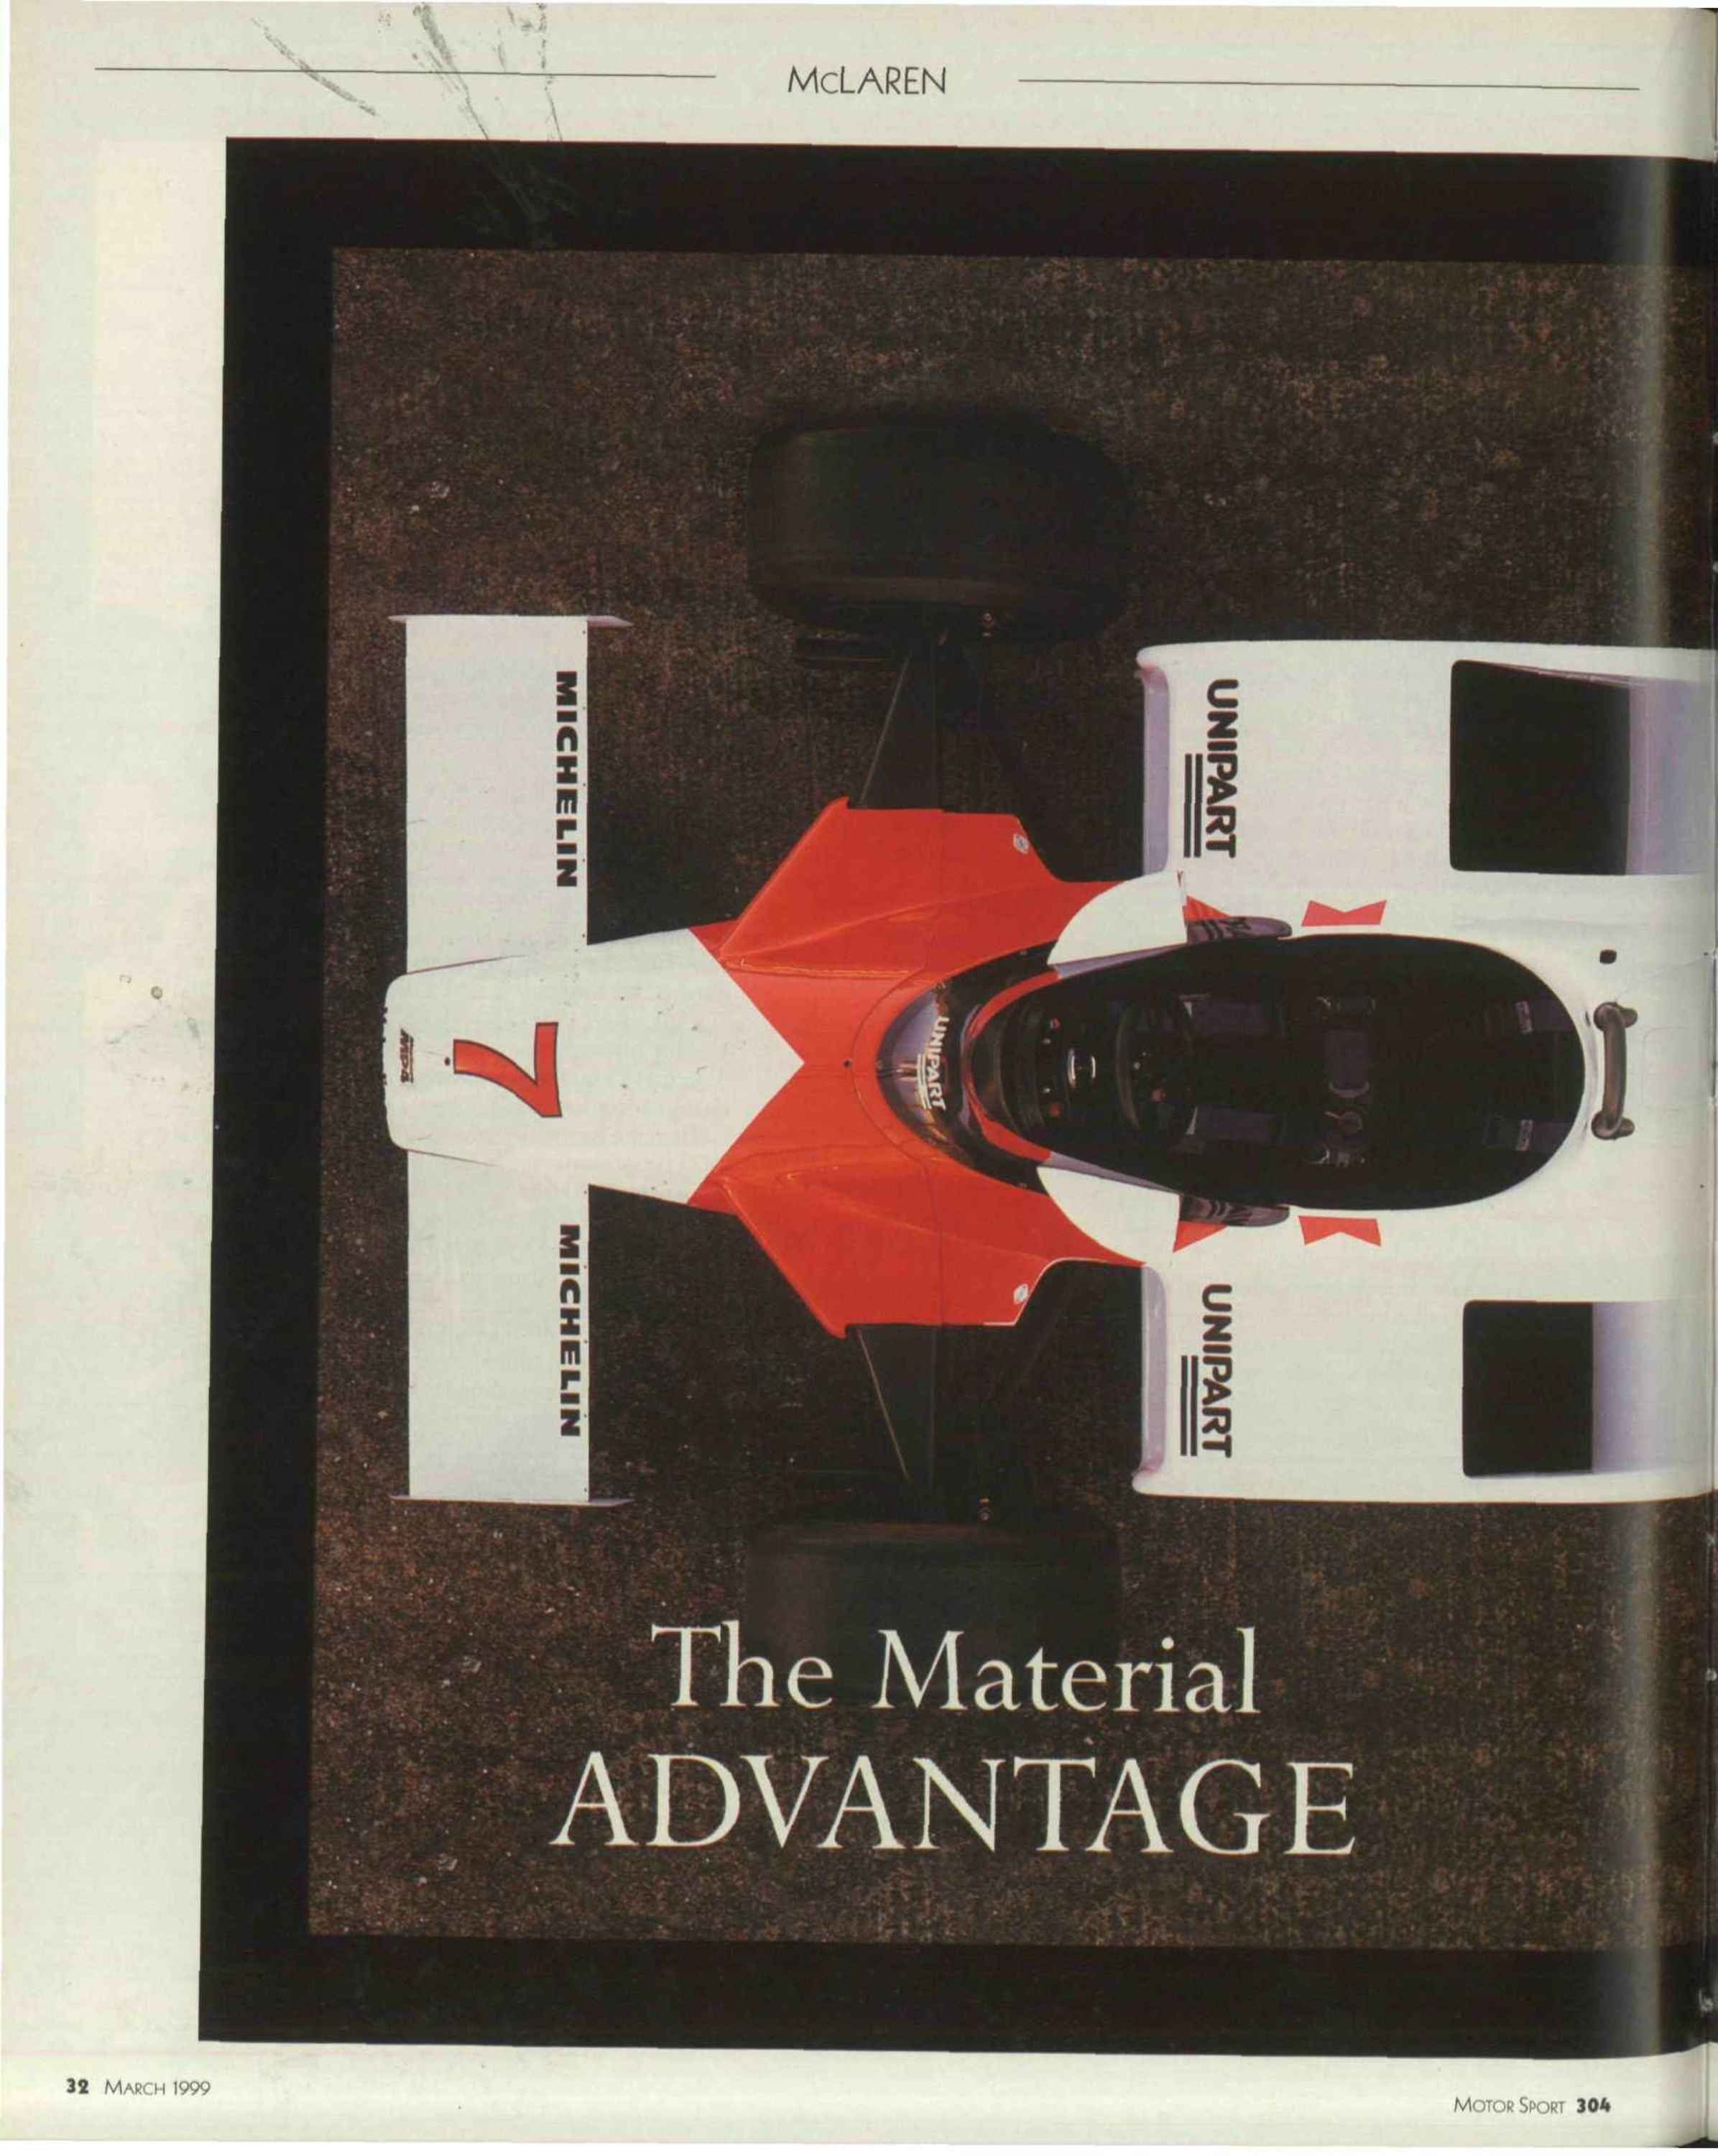 the material advantage image